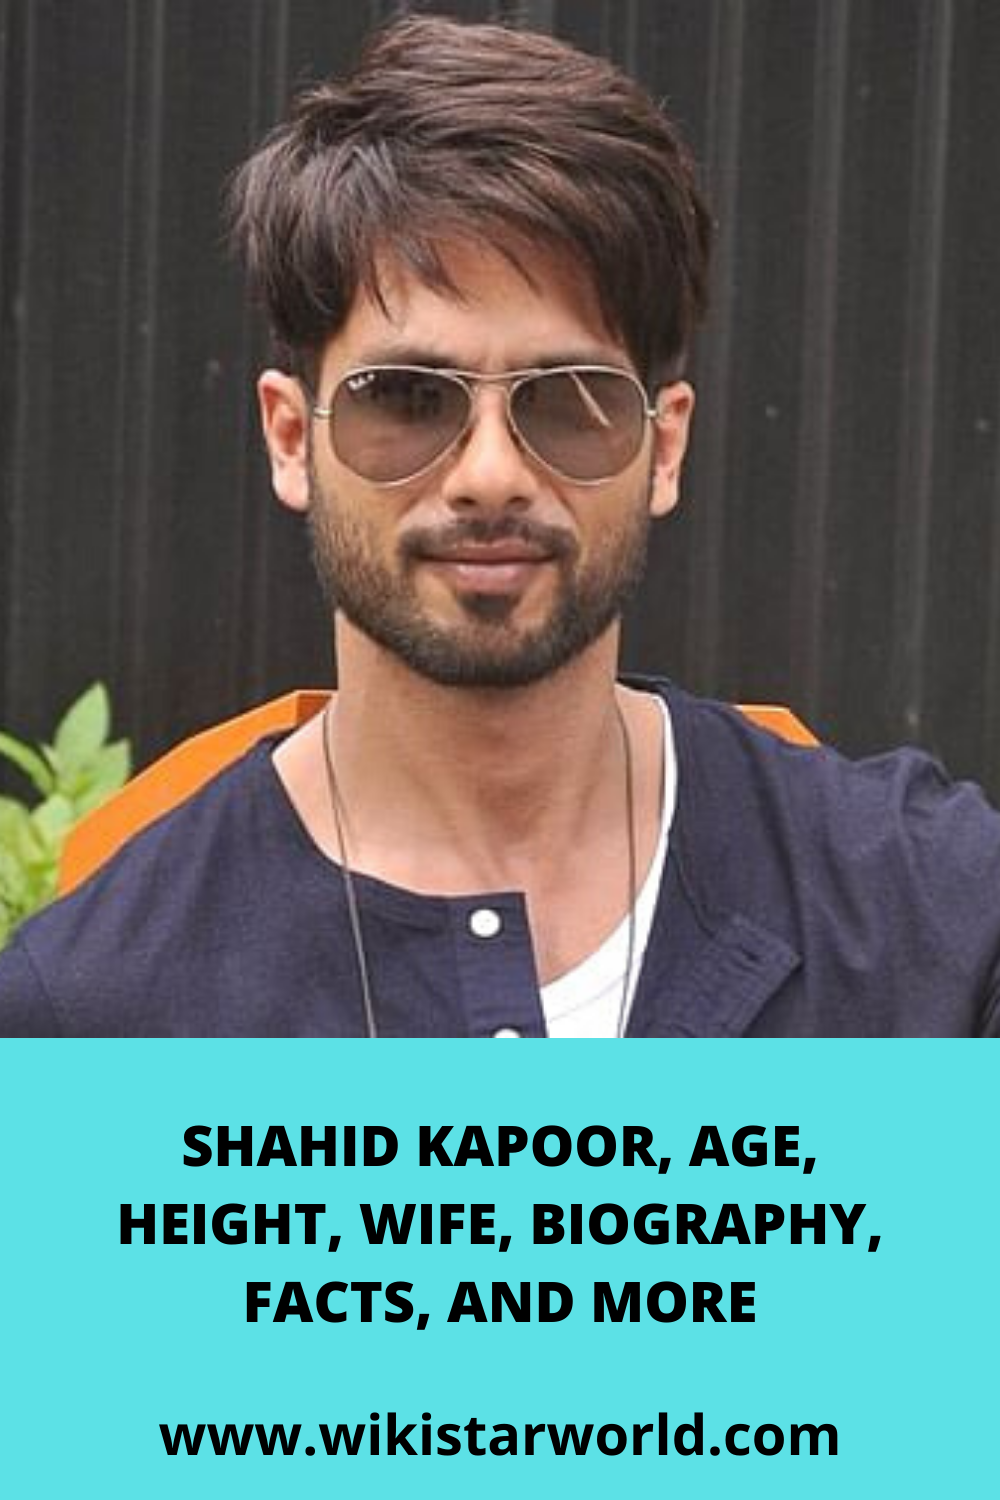 Shahid Kapoor, AGE, HEIGHT, WIFE, BIOGRAPHY, FACTS, AND